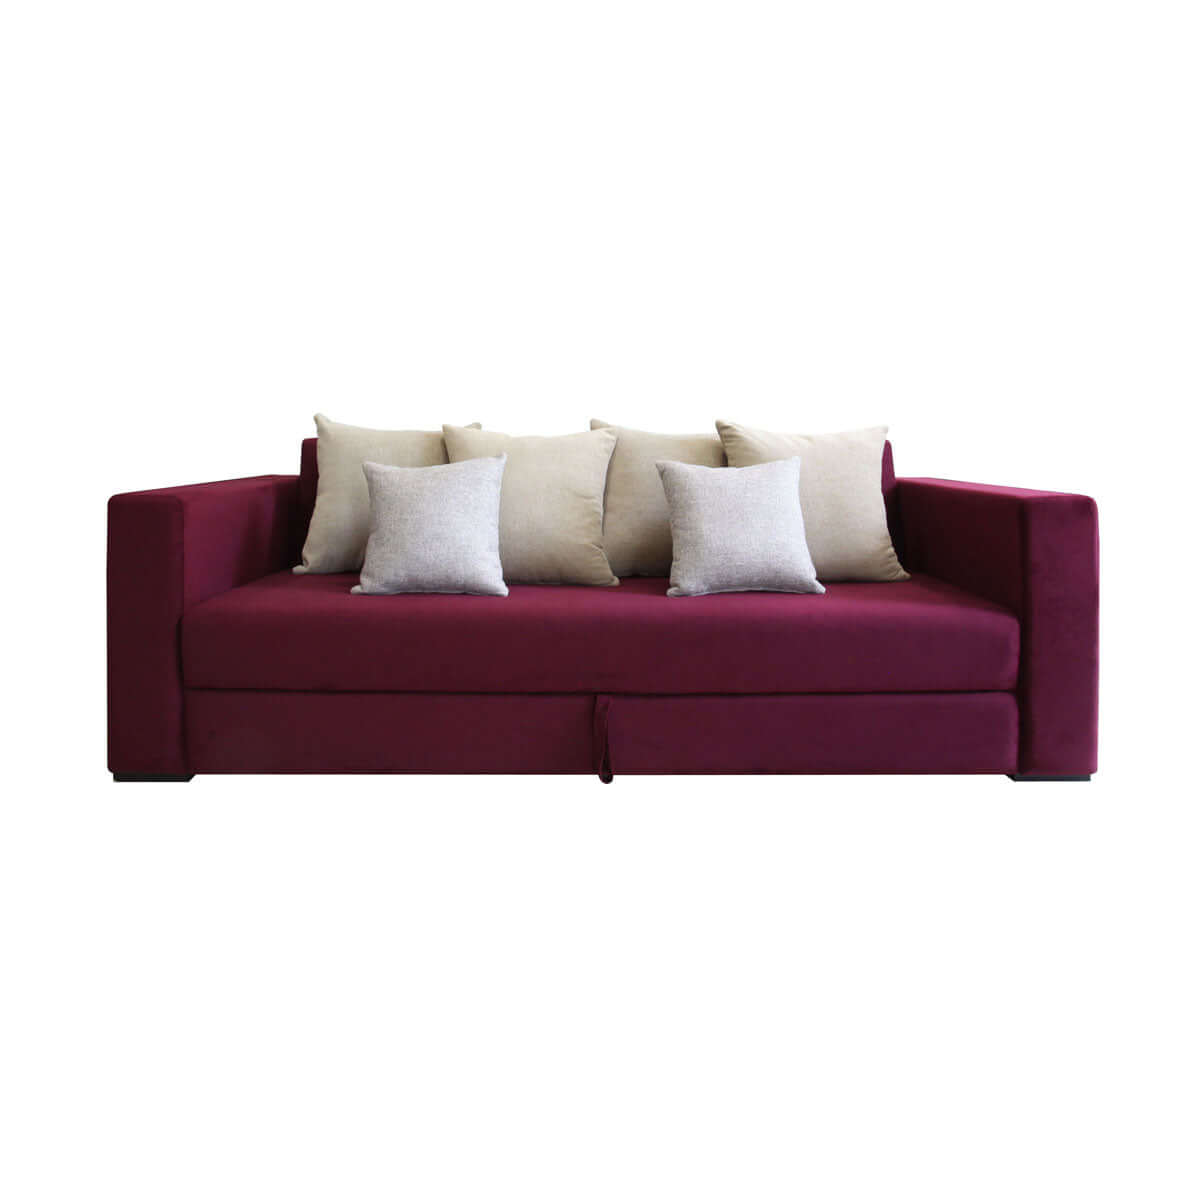 La Vida Storage 3-Seat Sofa in Simply Purple